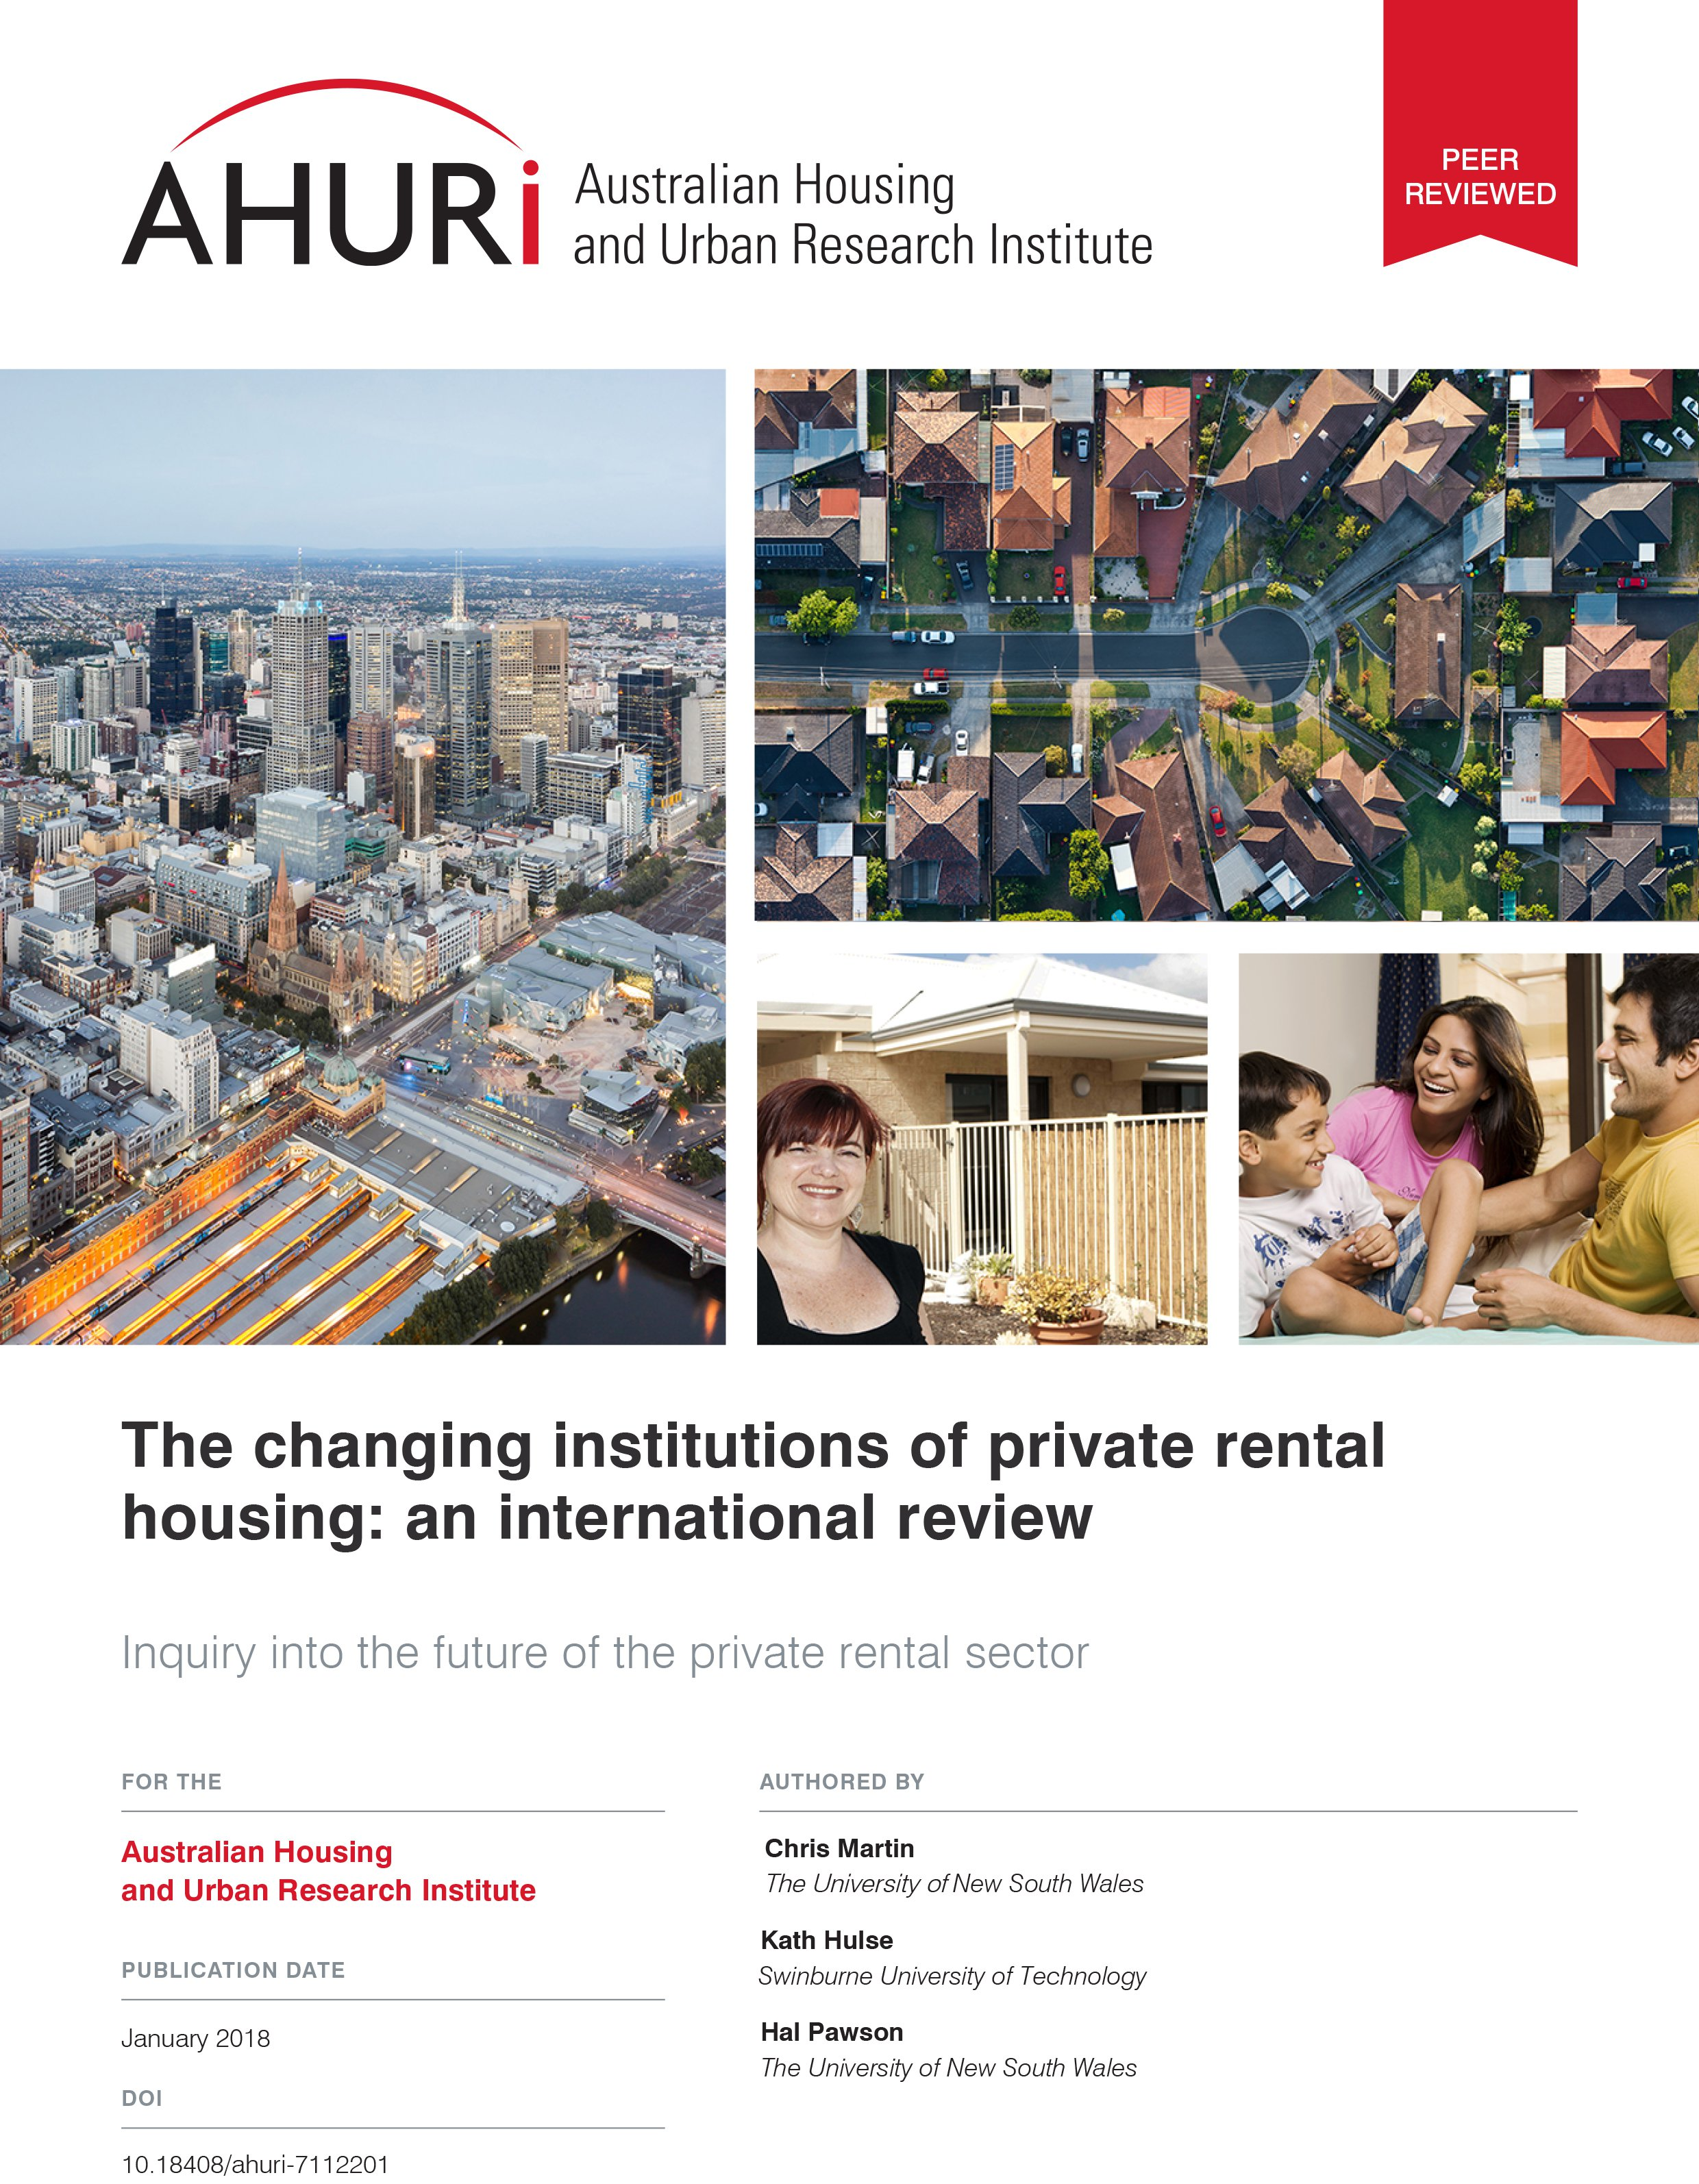 Final Report - The changing institutions of private rental housing: an international review